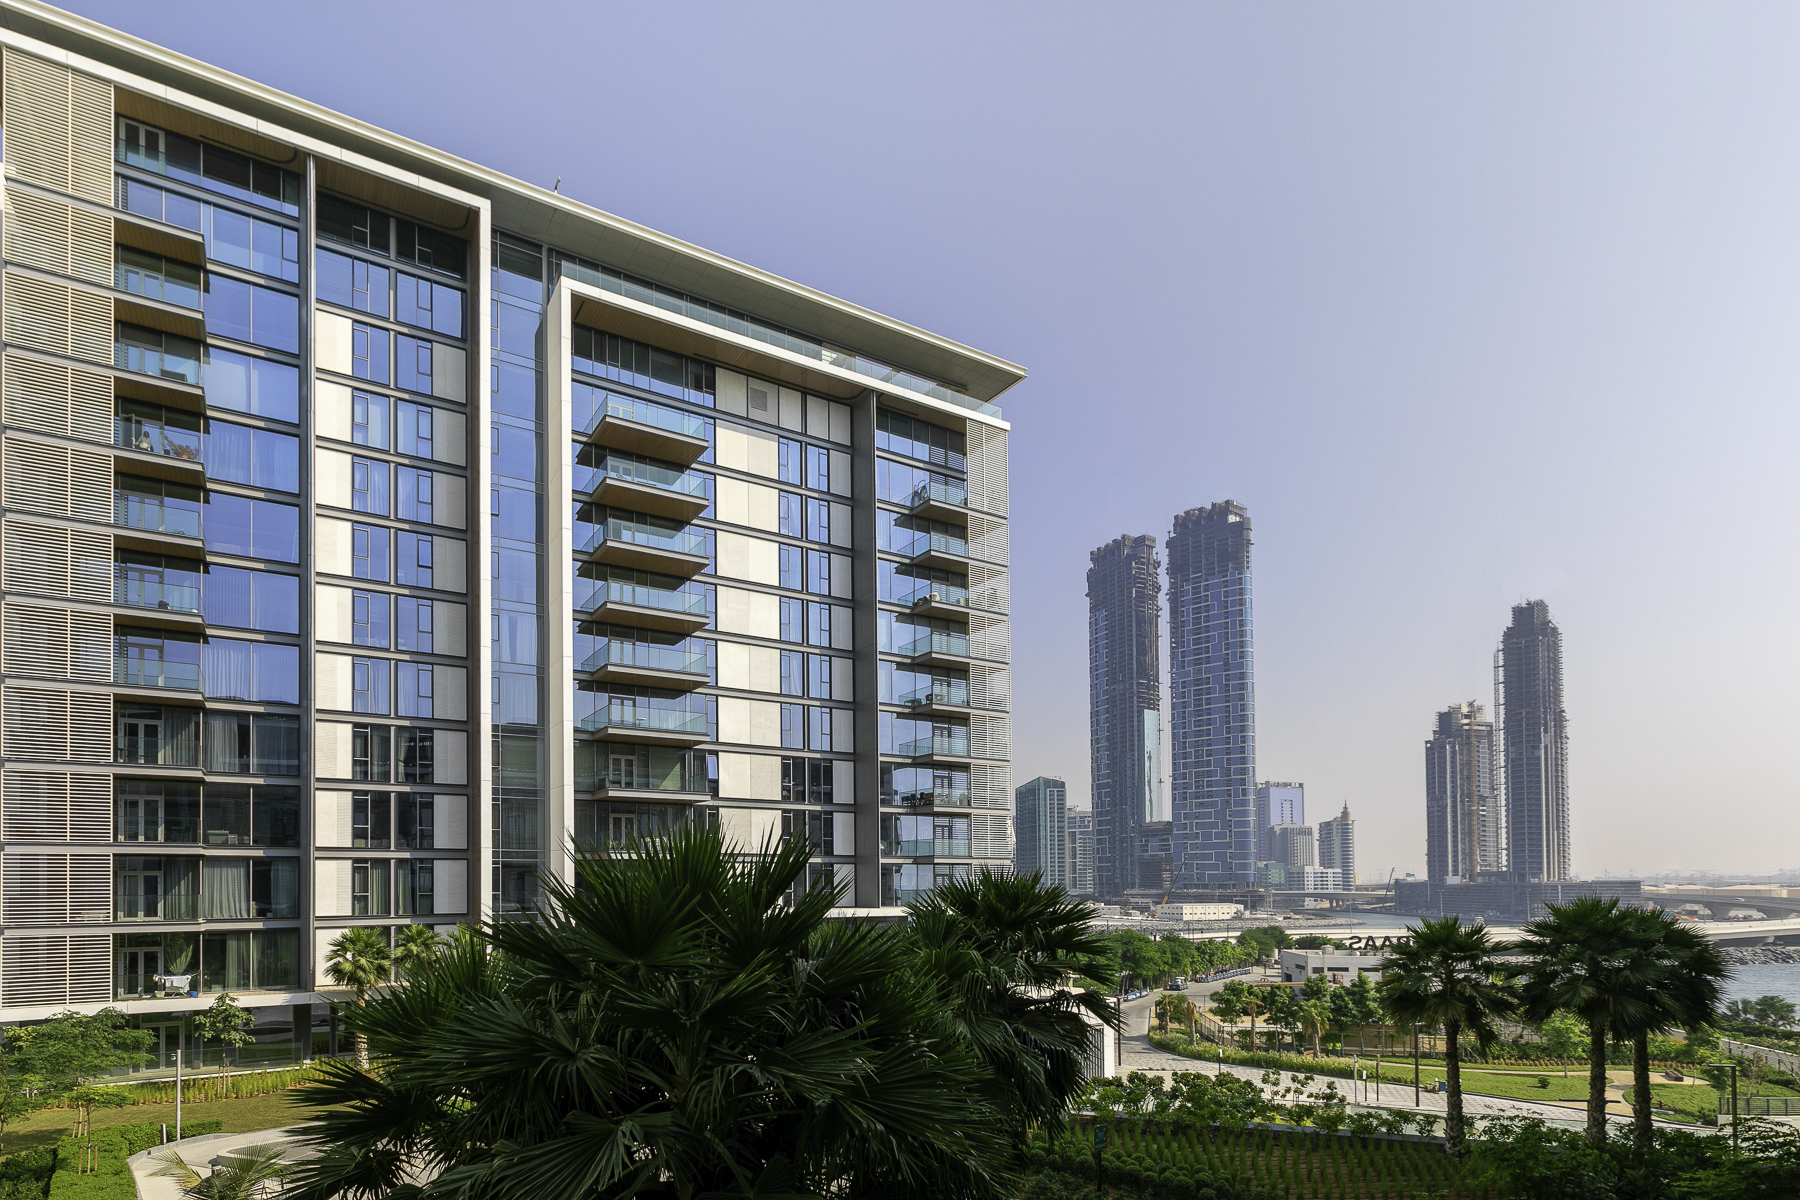 Apartment Experience the Bluewaters lifestyle On This All New 1 Bed in Building 5 photo 21298950